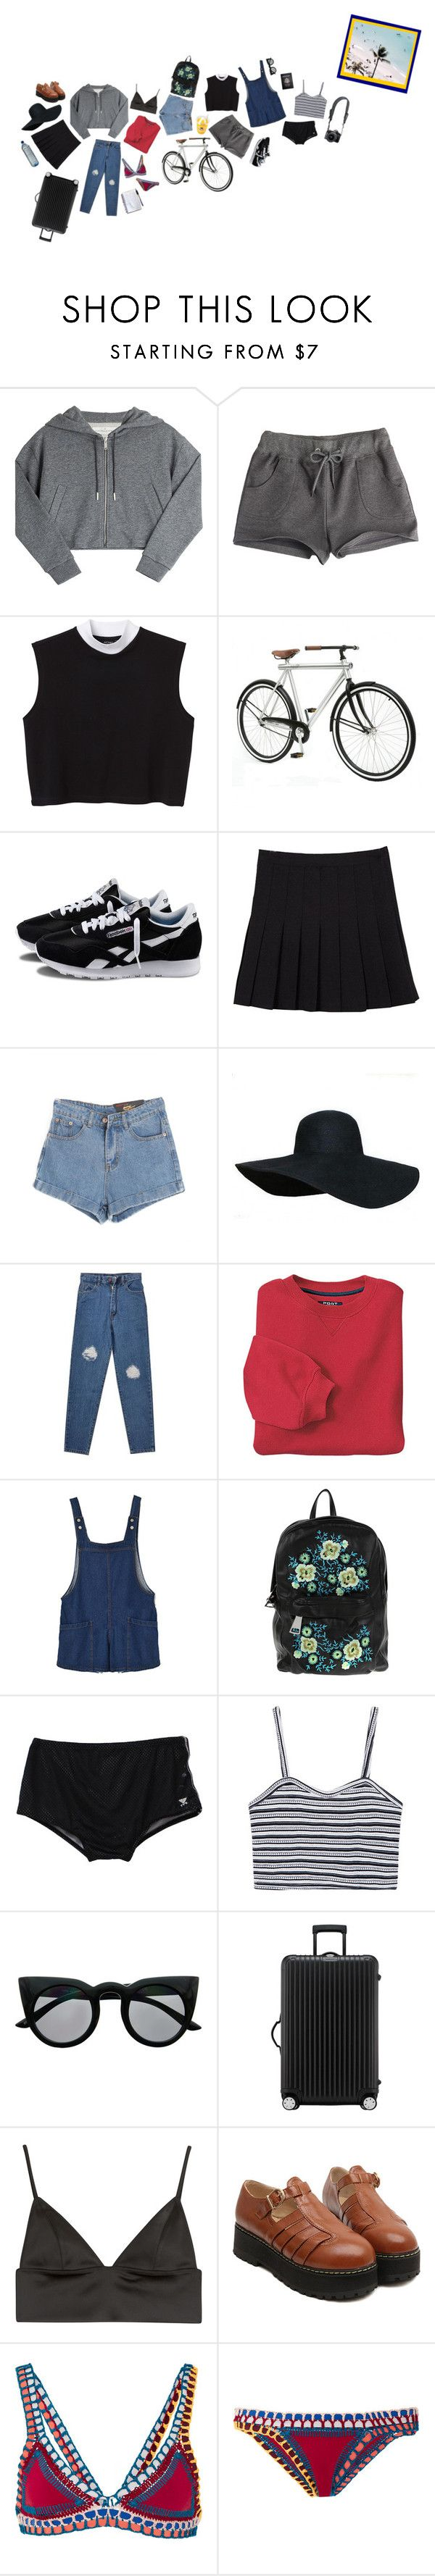 """Late holidays"" by miaminou ❤ liked on Polyvore featuring Golden Goose, Monki, Areaware, Reebok, Chicnova Fashion, INC International Concepts, Christopher Kane, TYR, Retrò and Rimowa"